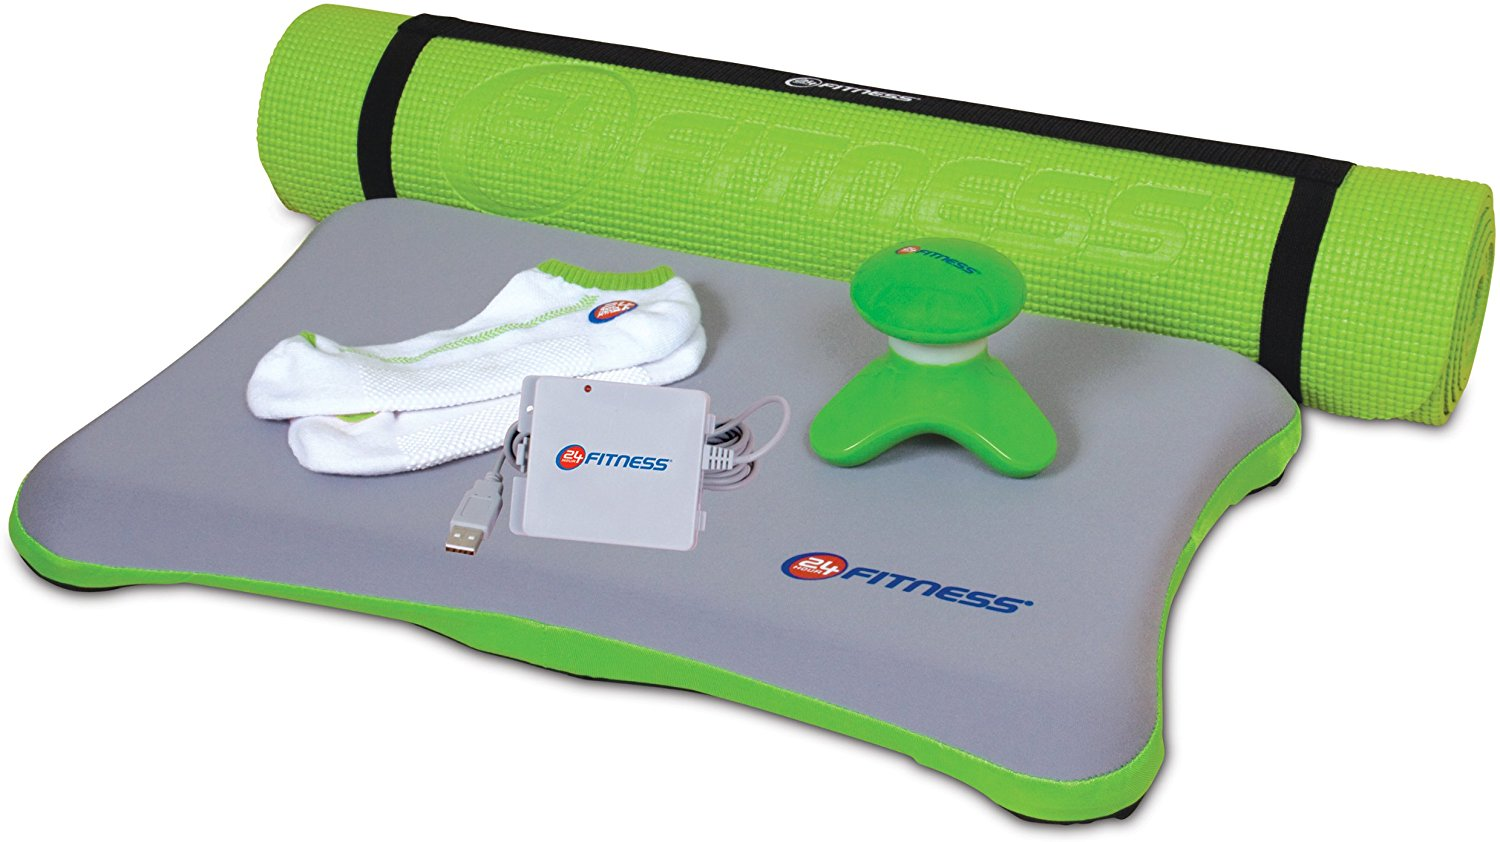 dreamGEAR Nintendo Wii 6-in-1 24 Hour Fitness Bundle (green)